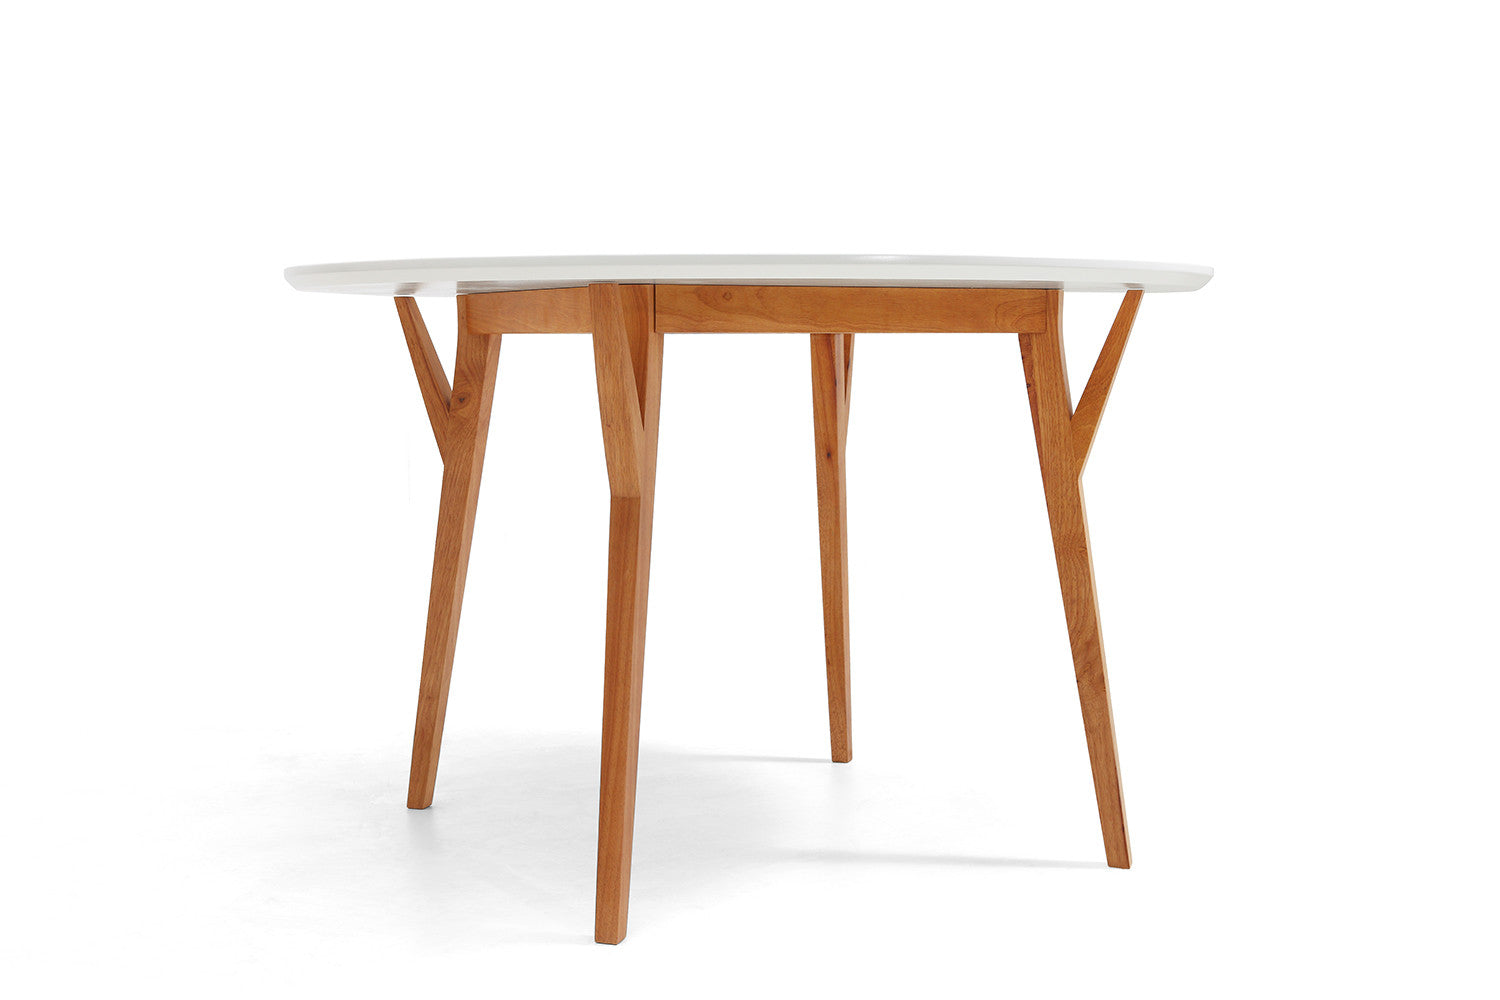 Table de salle manger ronde design scandinave moesa for Table salle a manger ronde blanche